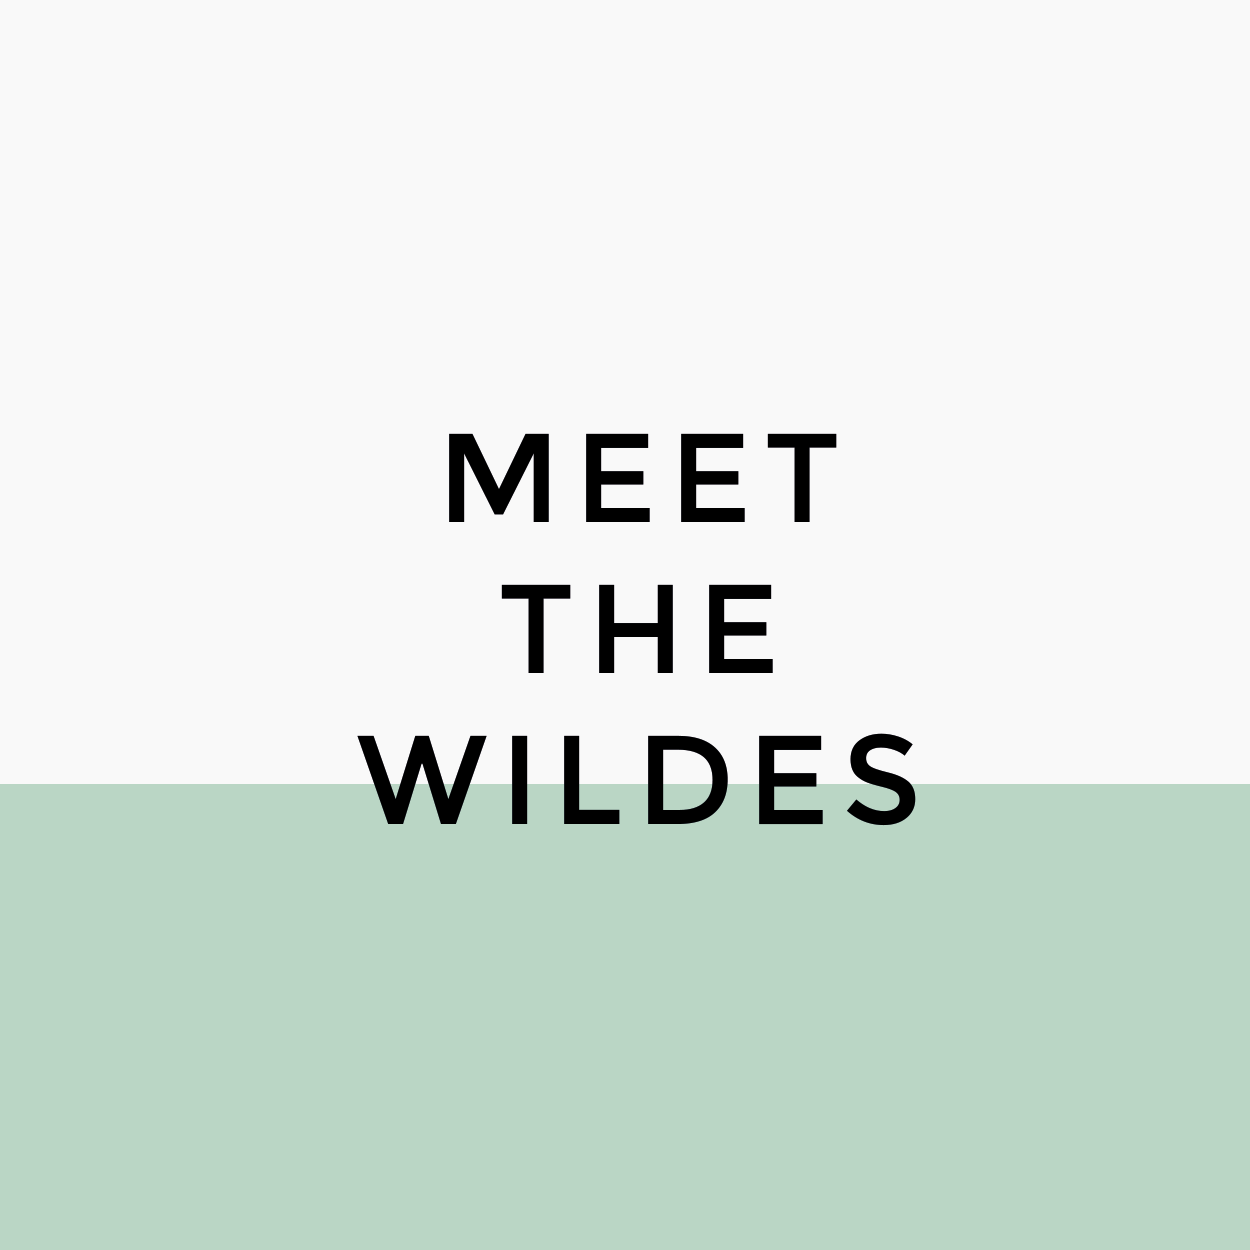 Blog rebranding for Meet the Wildes, including theme implementation - Designed by Wiltshire-based graphic designer, Kaye Huett